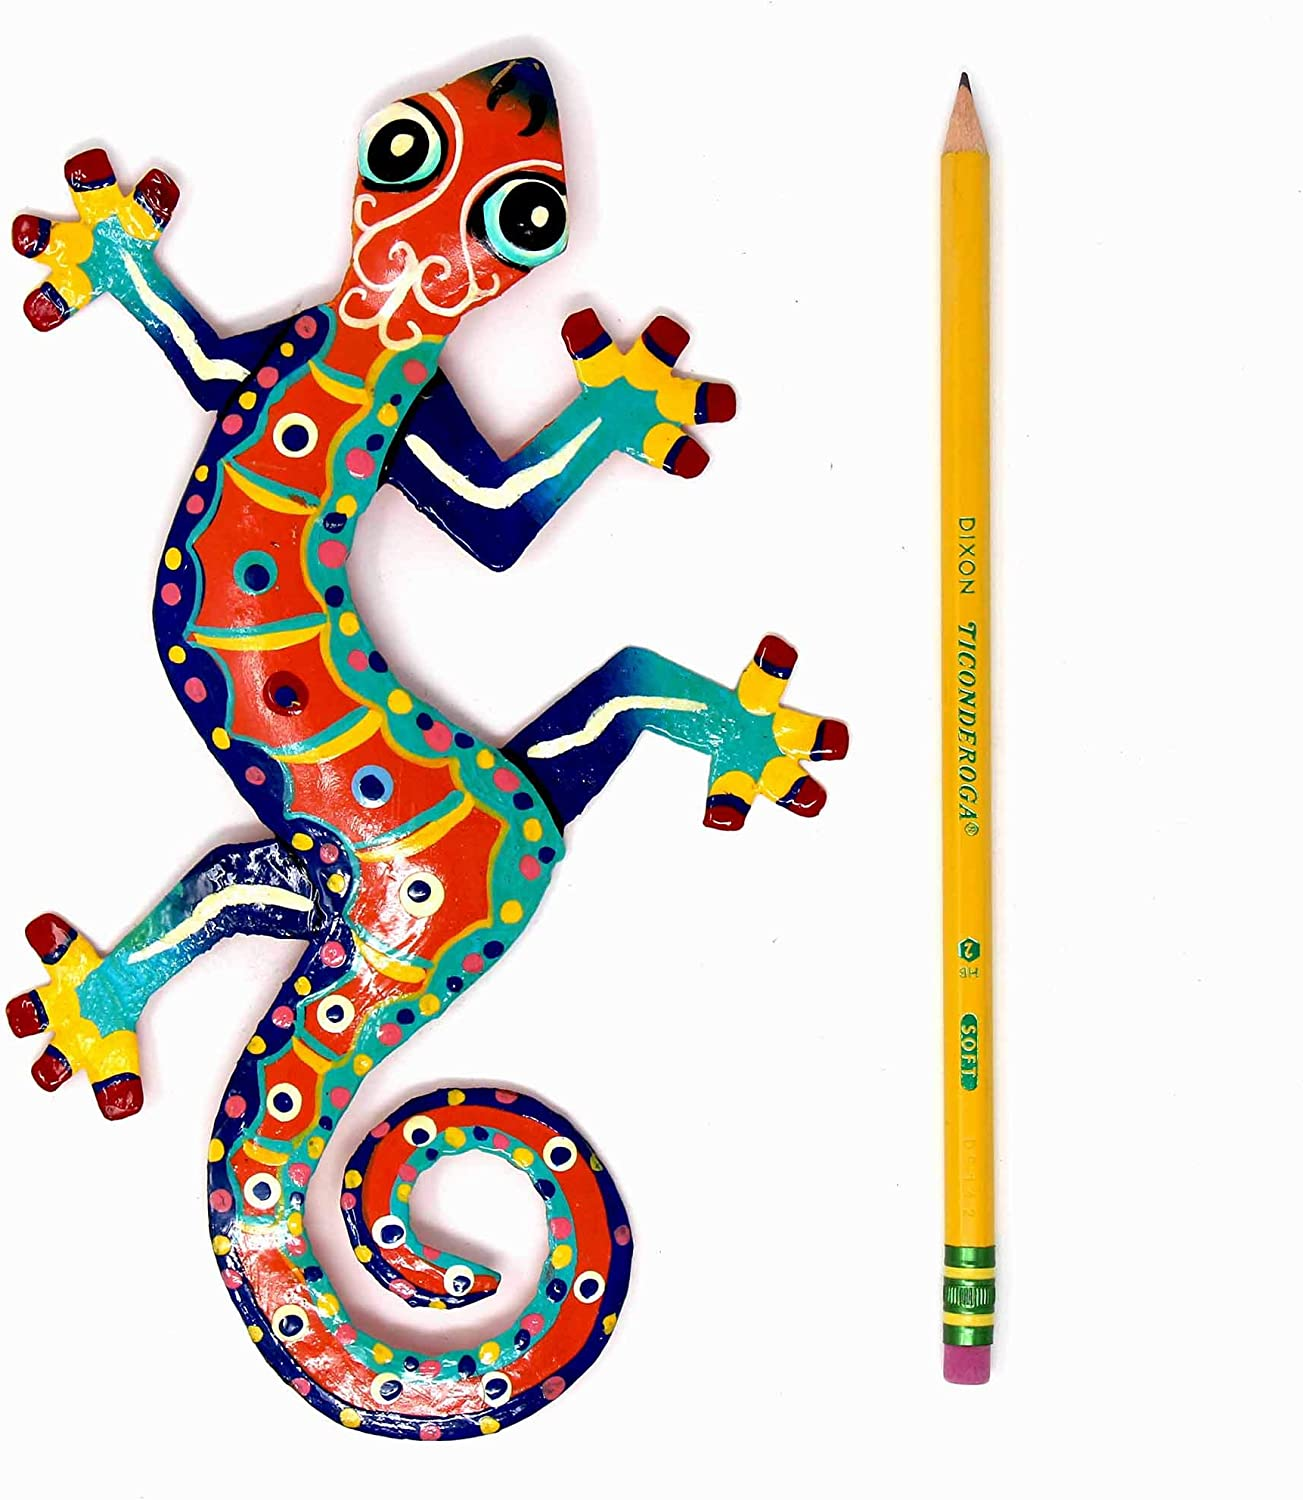 Pink with Dark Dots Global Crafts 8 Painted Gecko Recycled Haitian Metal Wall Art Multi-Colored